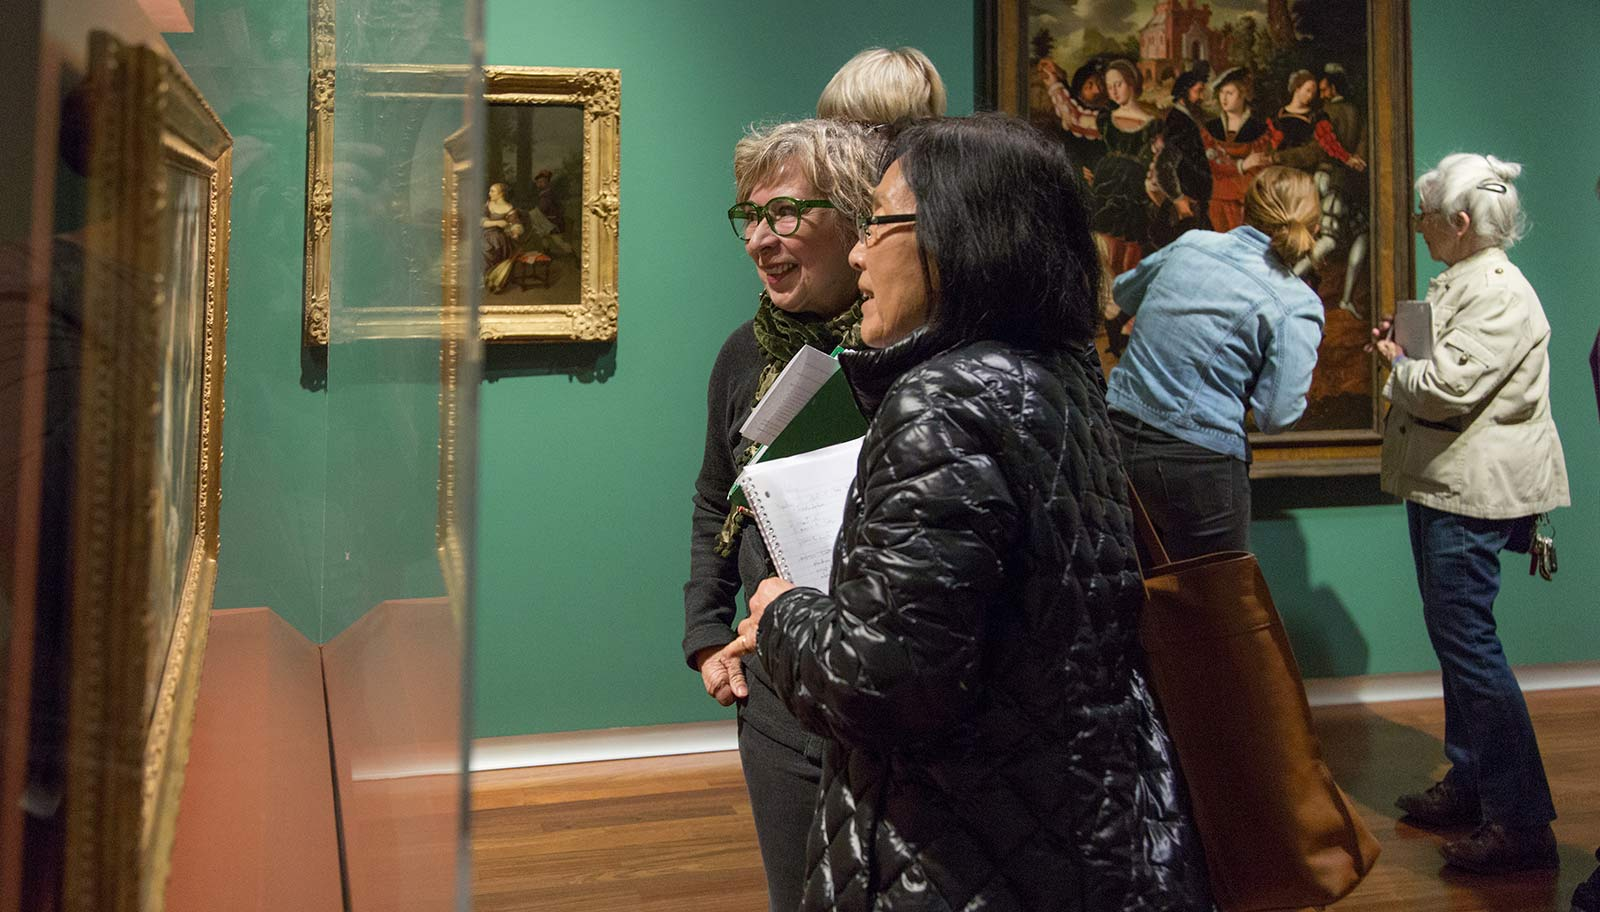 Docents looking at a work of art